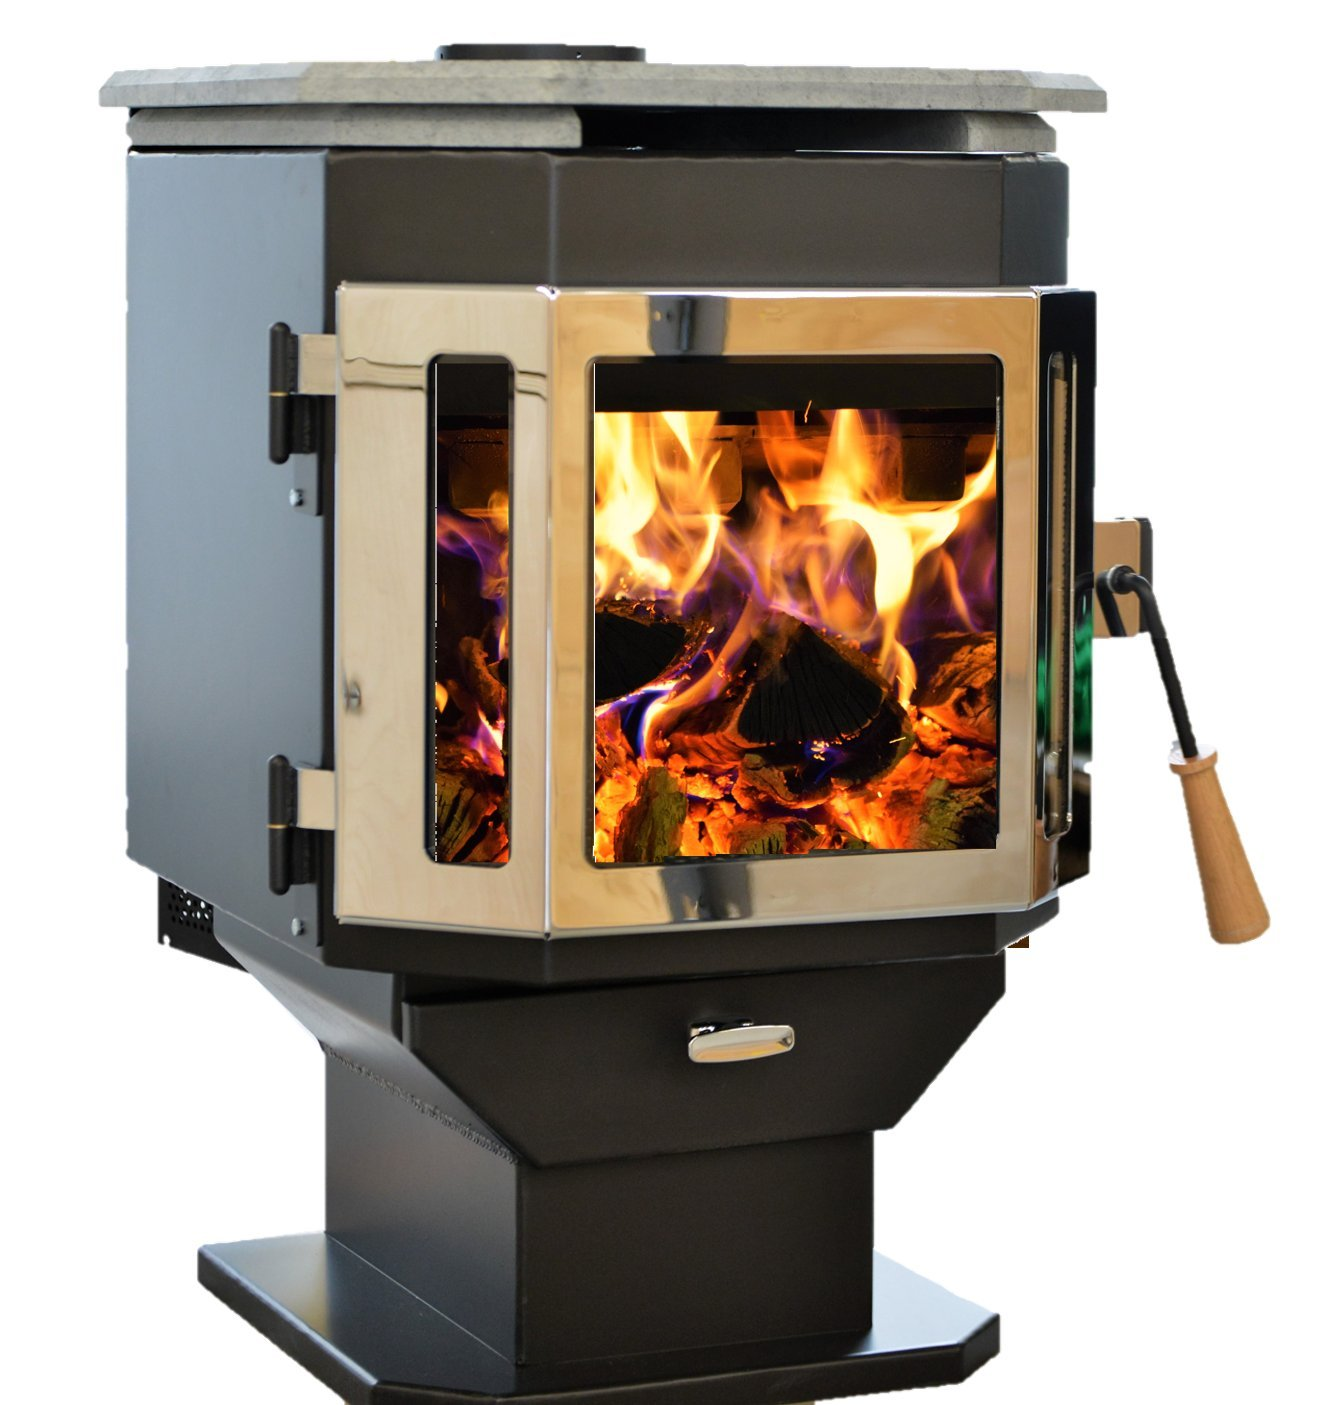 Amazon.com: MF Fire Catalyst Efficient Wood Burning Stove: Home & Kitchen